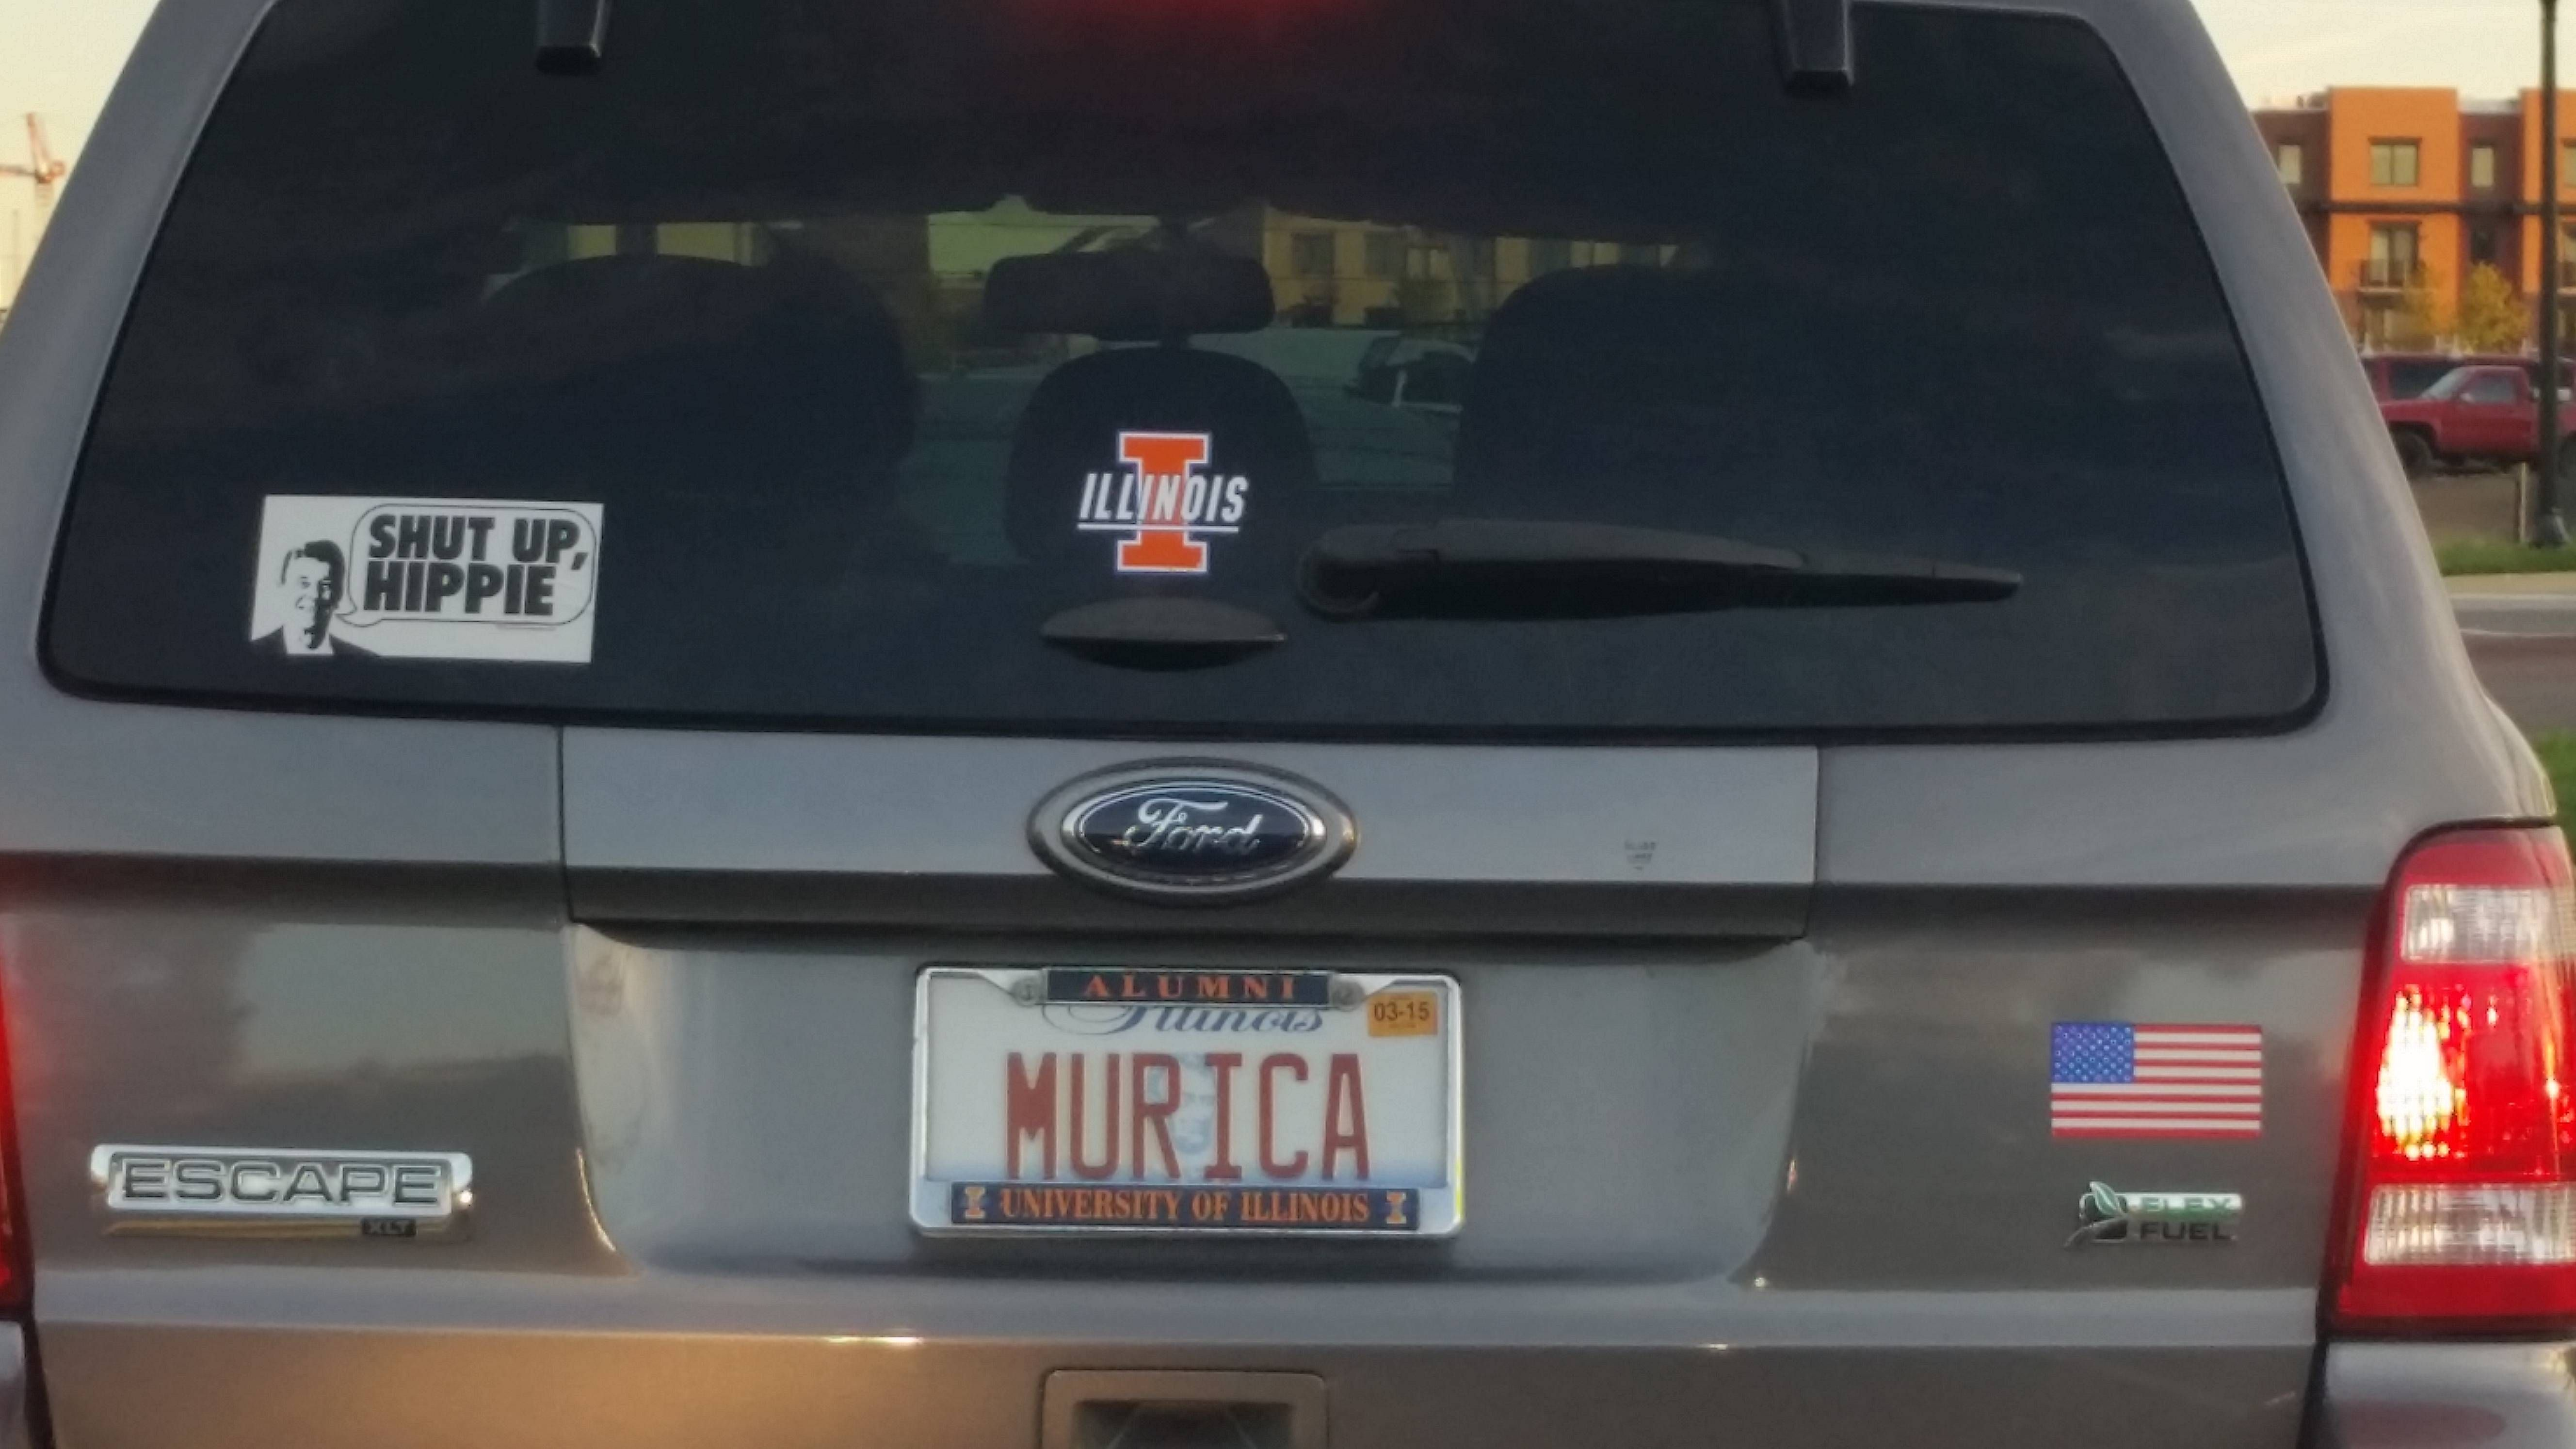 Murica License Plate Makes This The Most Murica Ford Escape Out